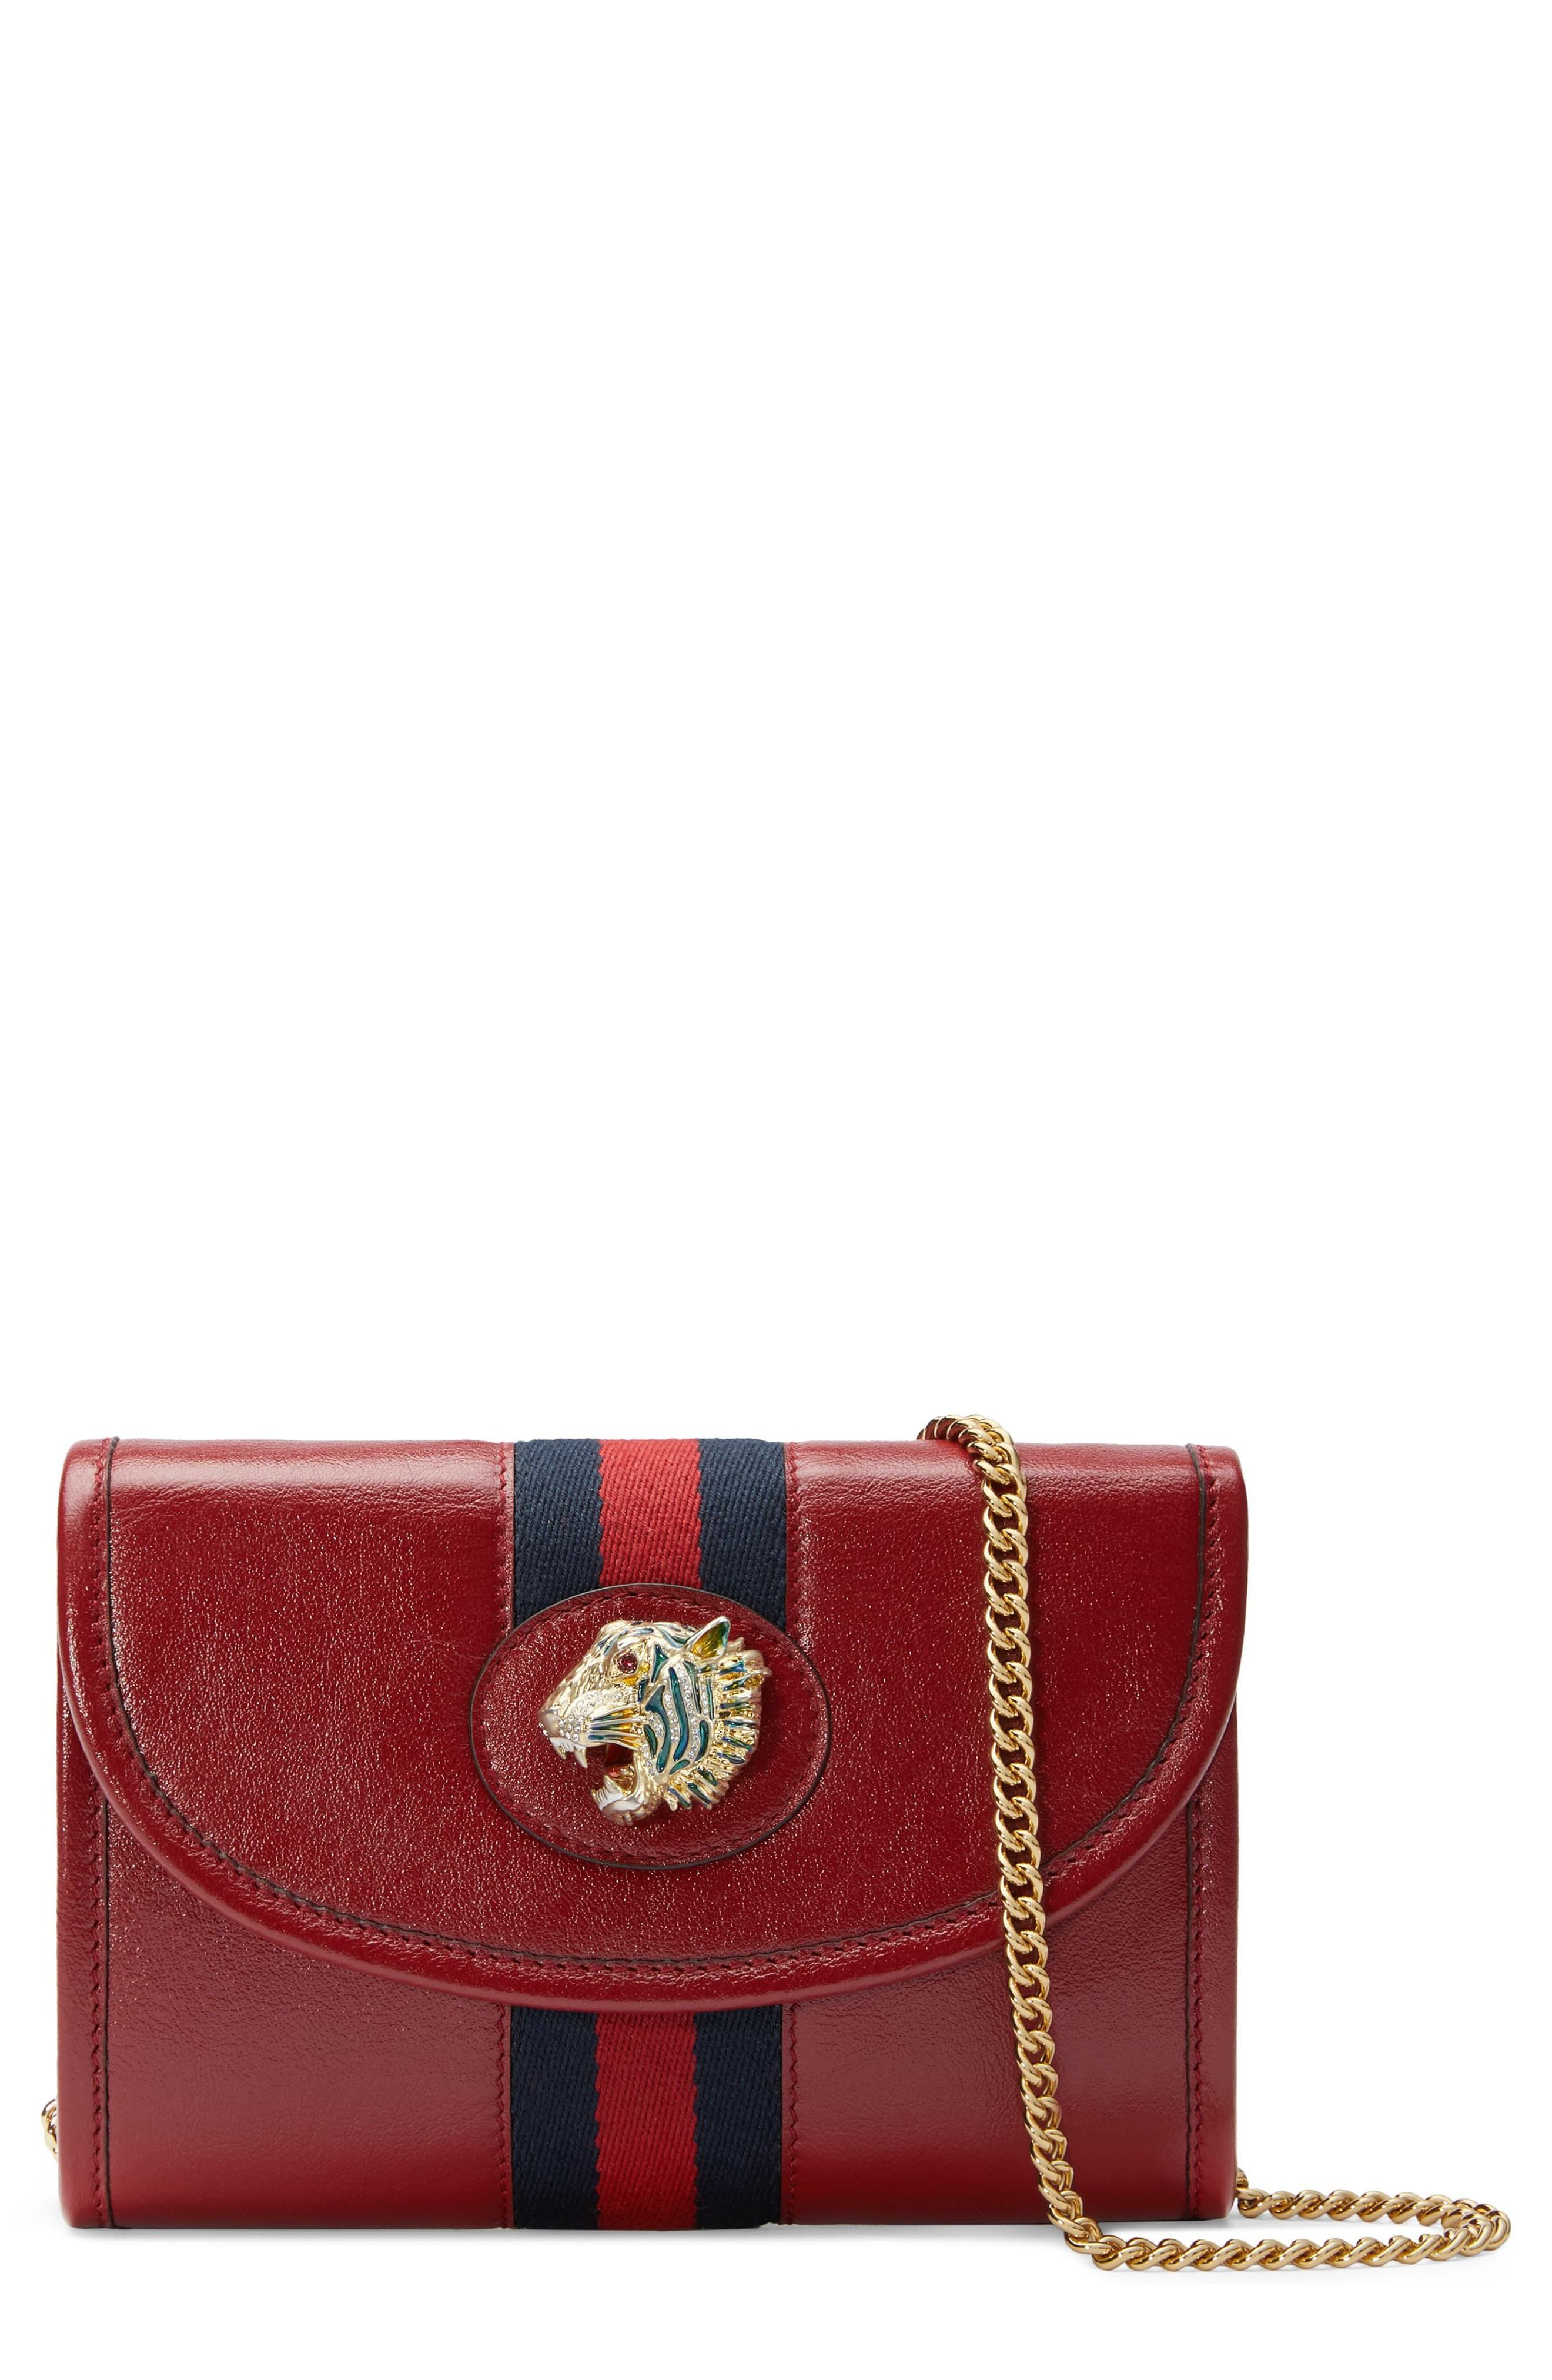 3a53e5cf8 Gucci Mini Rajah Leather Crossbody Bag in 2019 | Products | Leather ...